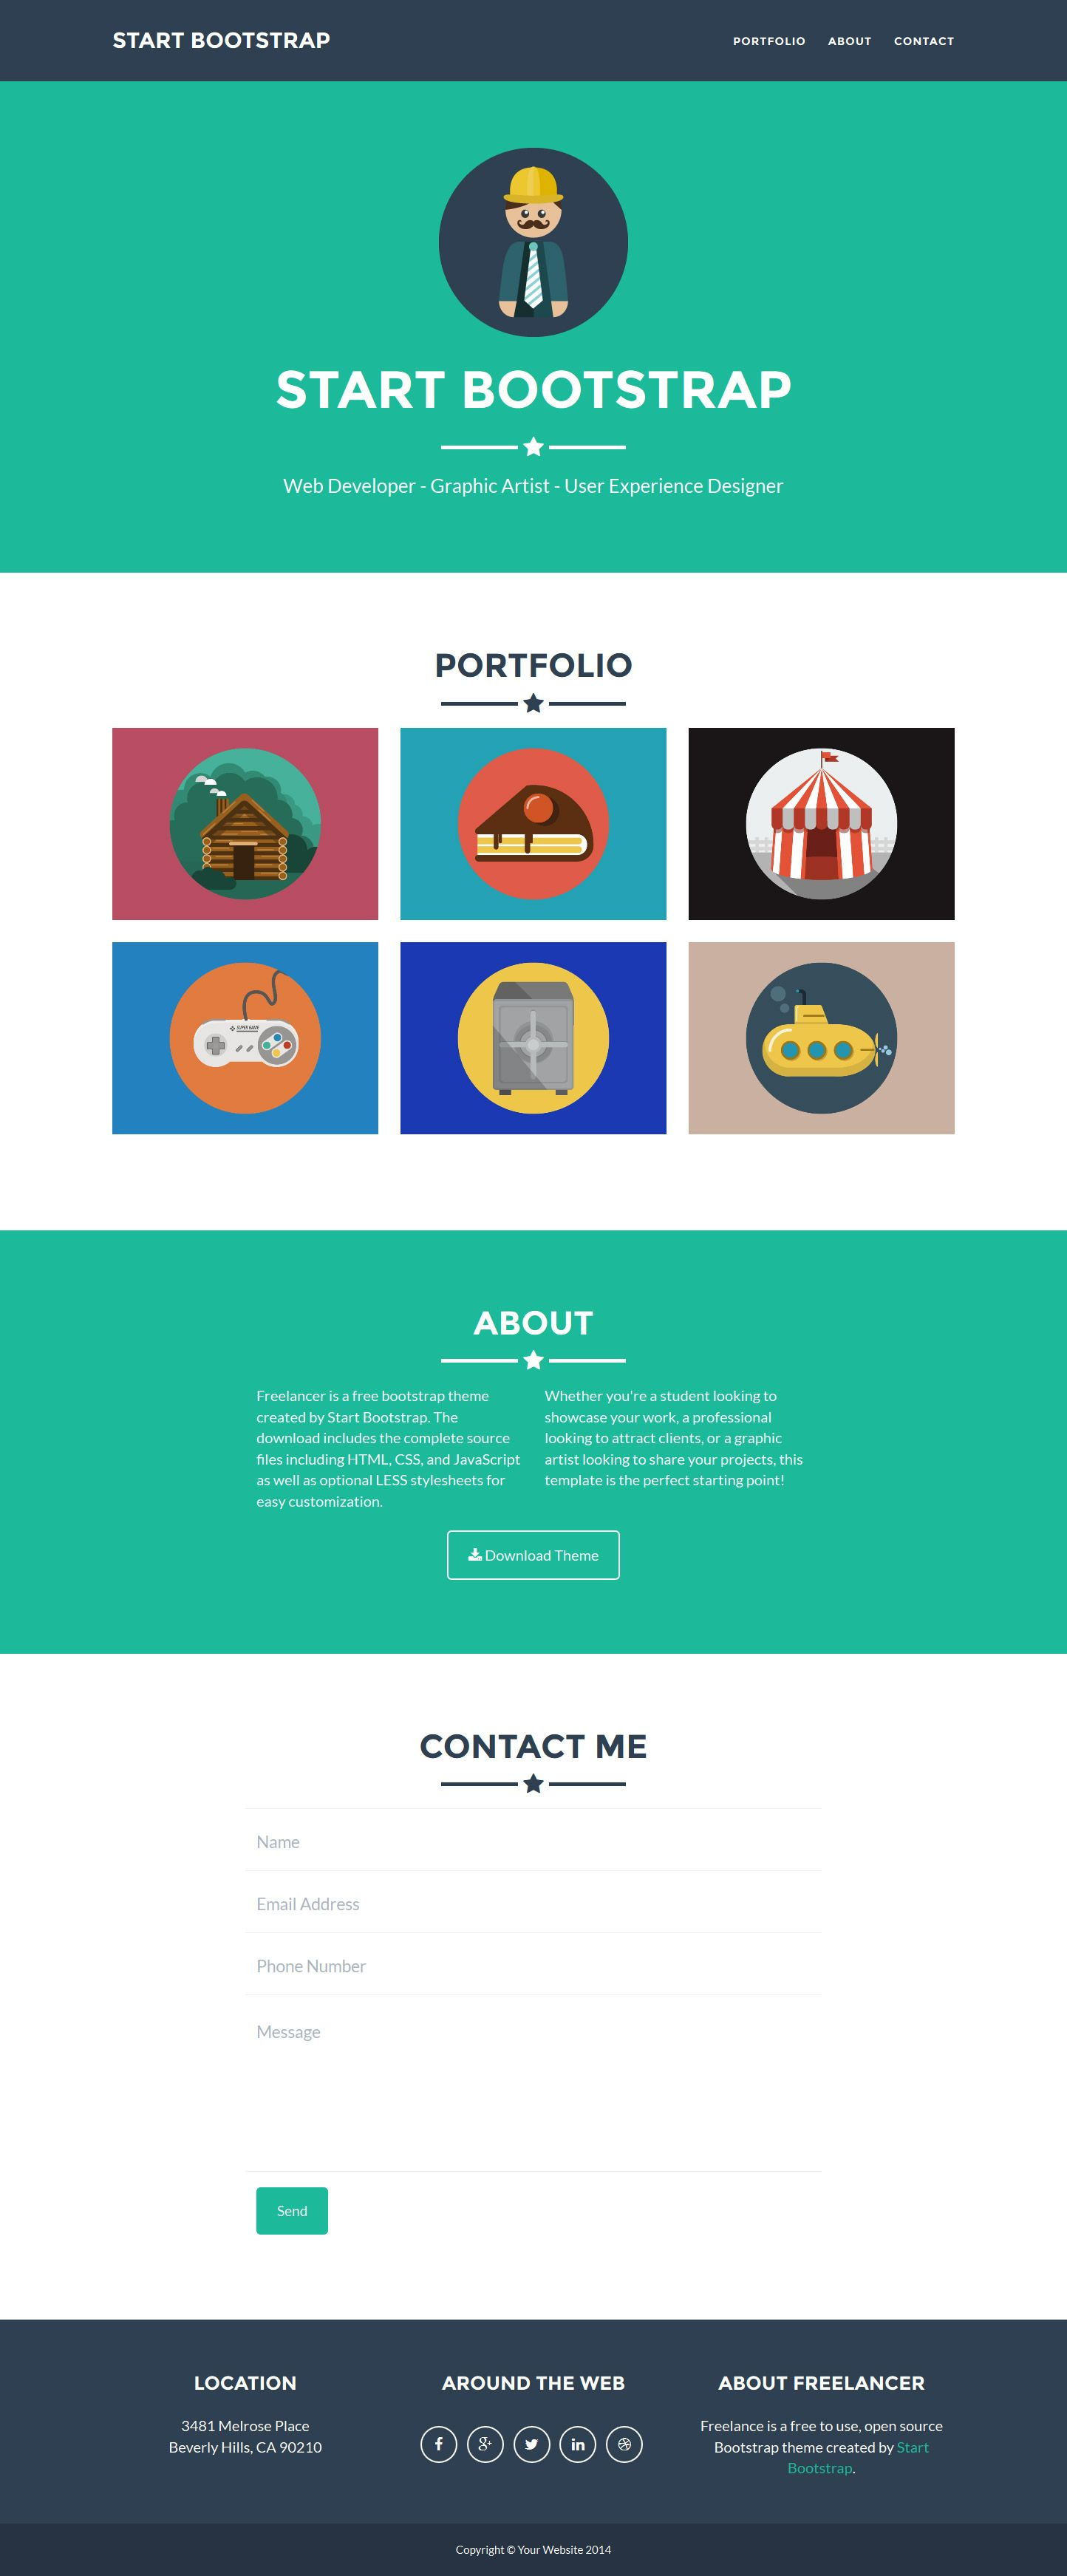 Freelancer by Start Bootstrap | Free Templates | Pinterest